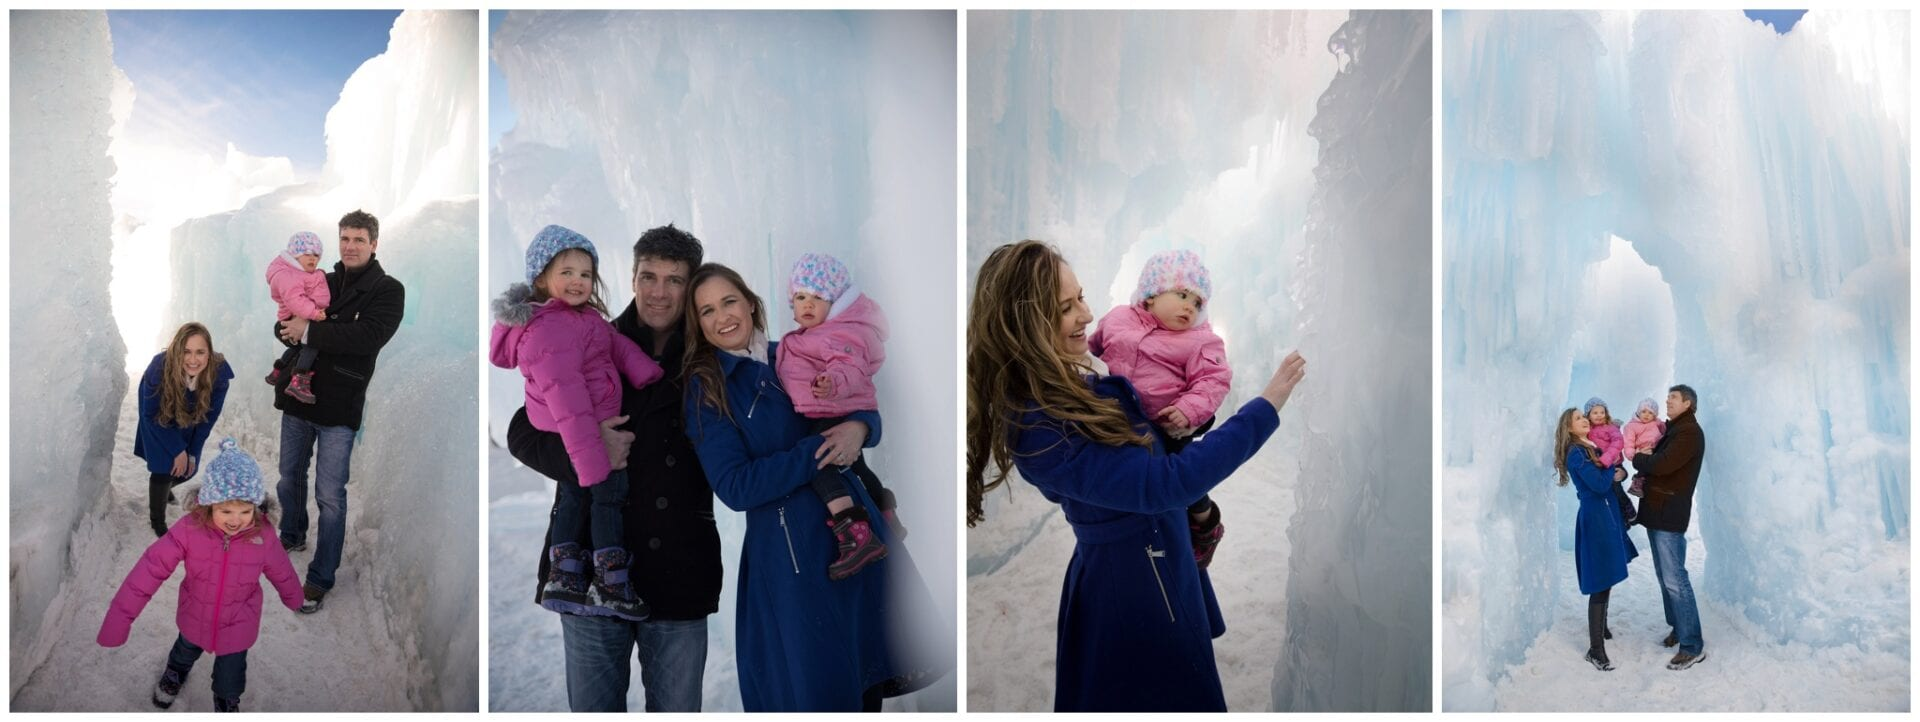 Family-Outdoor-Portrait-Photography-Ice-Castles